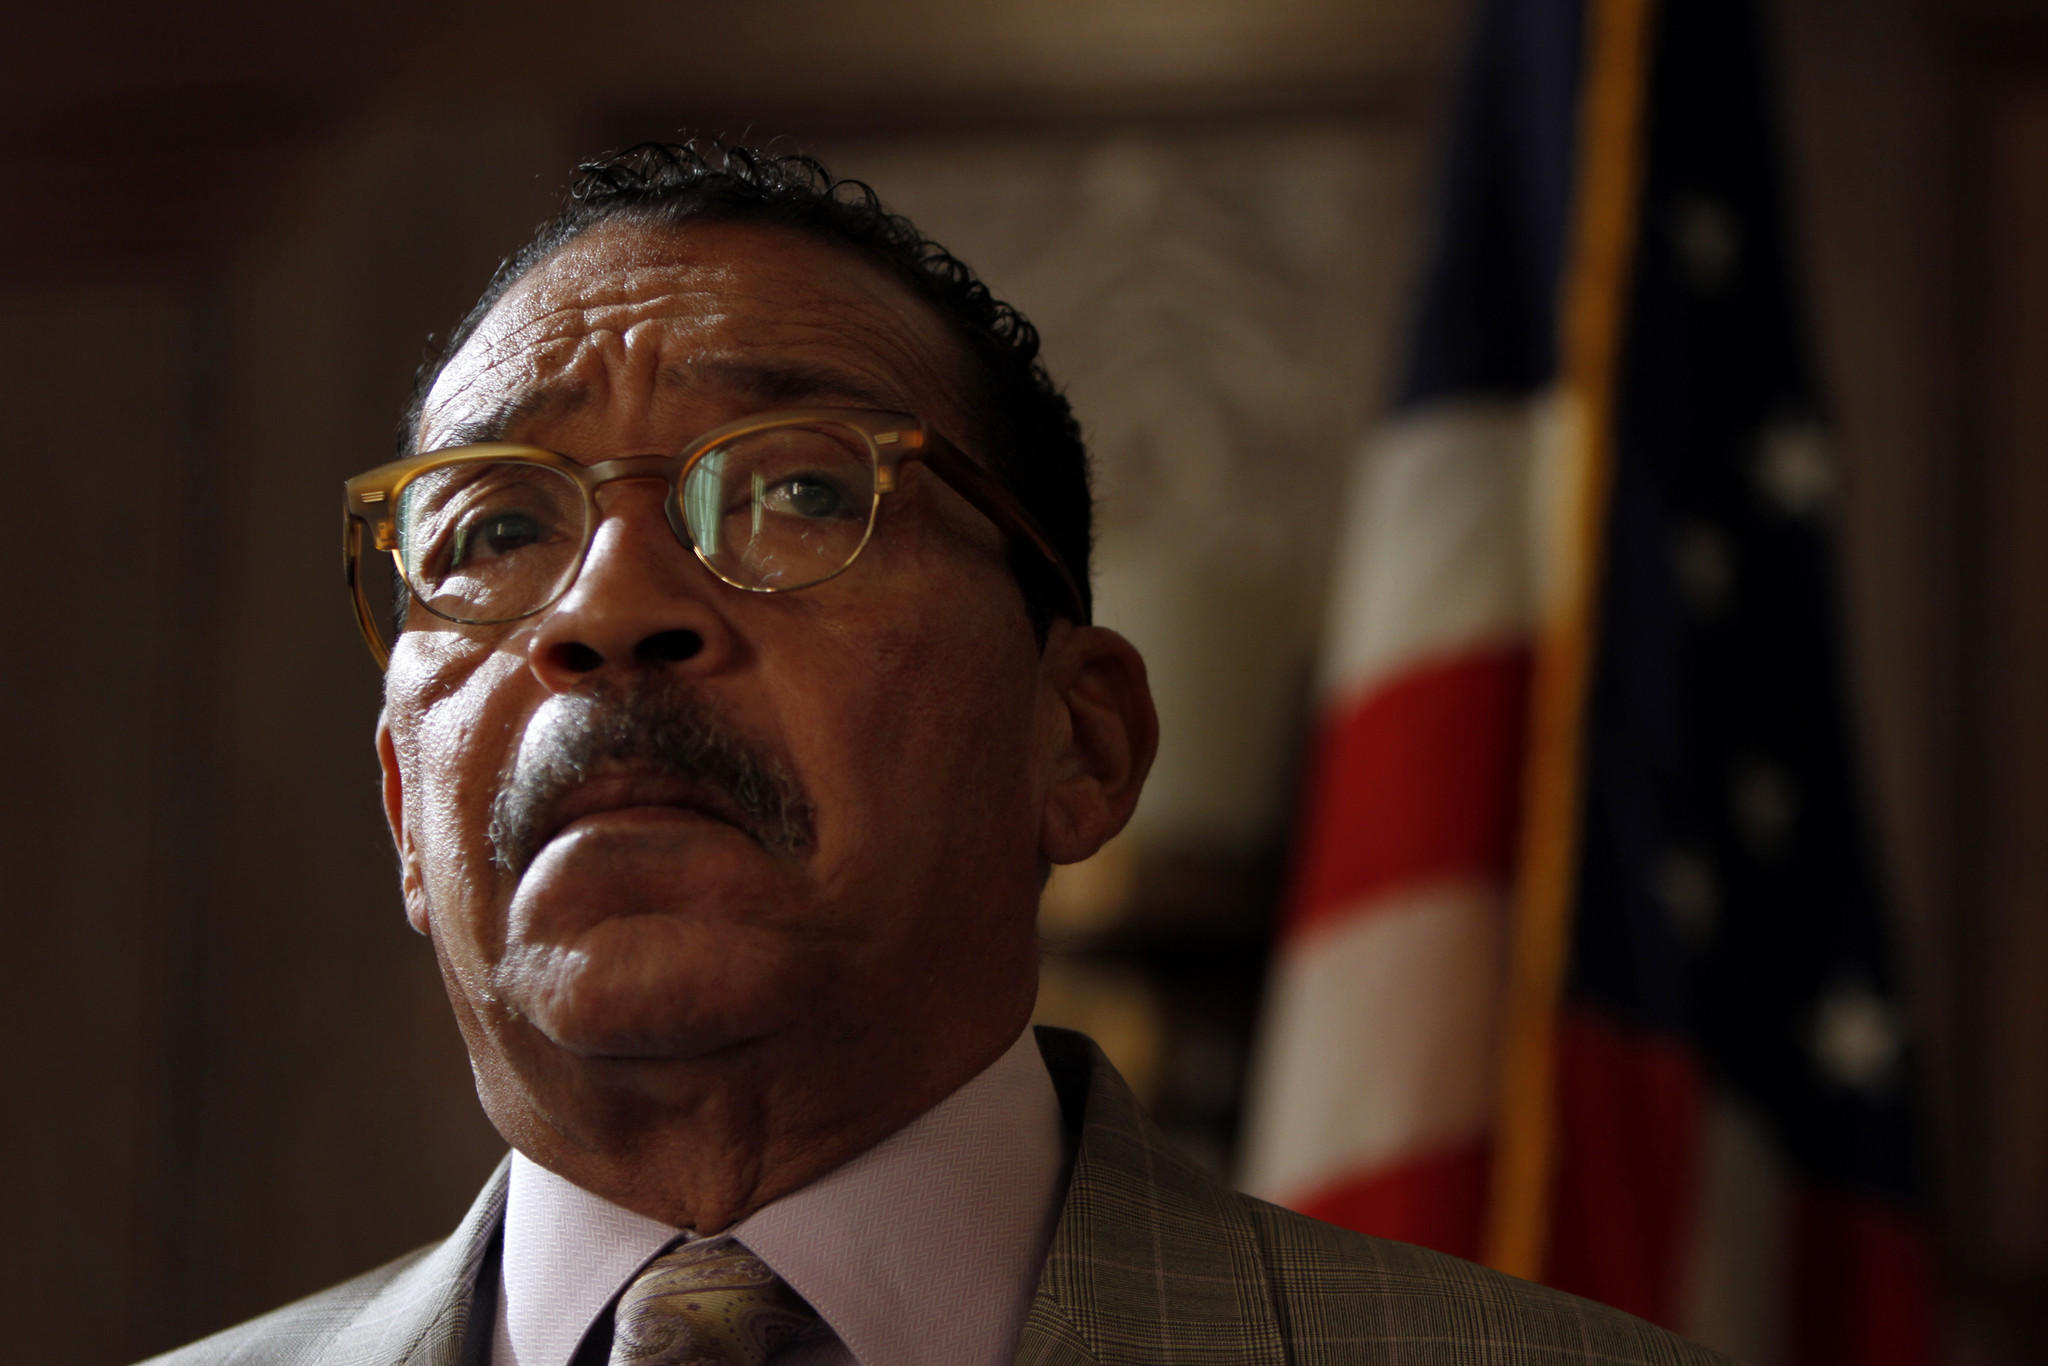 City Council President Herb Wesson during a press conference at City Hall in Los Angeles on Jan. 14.